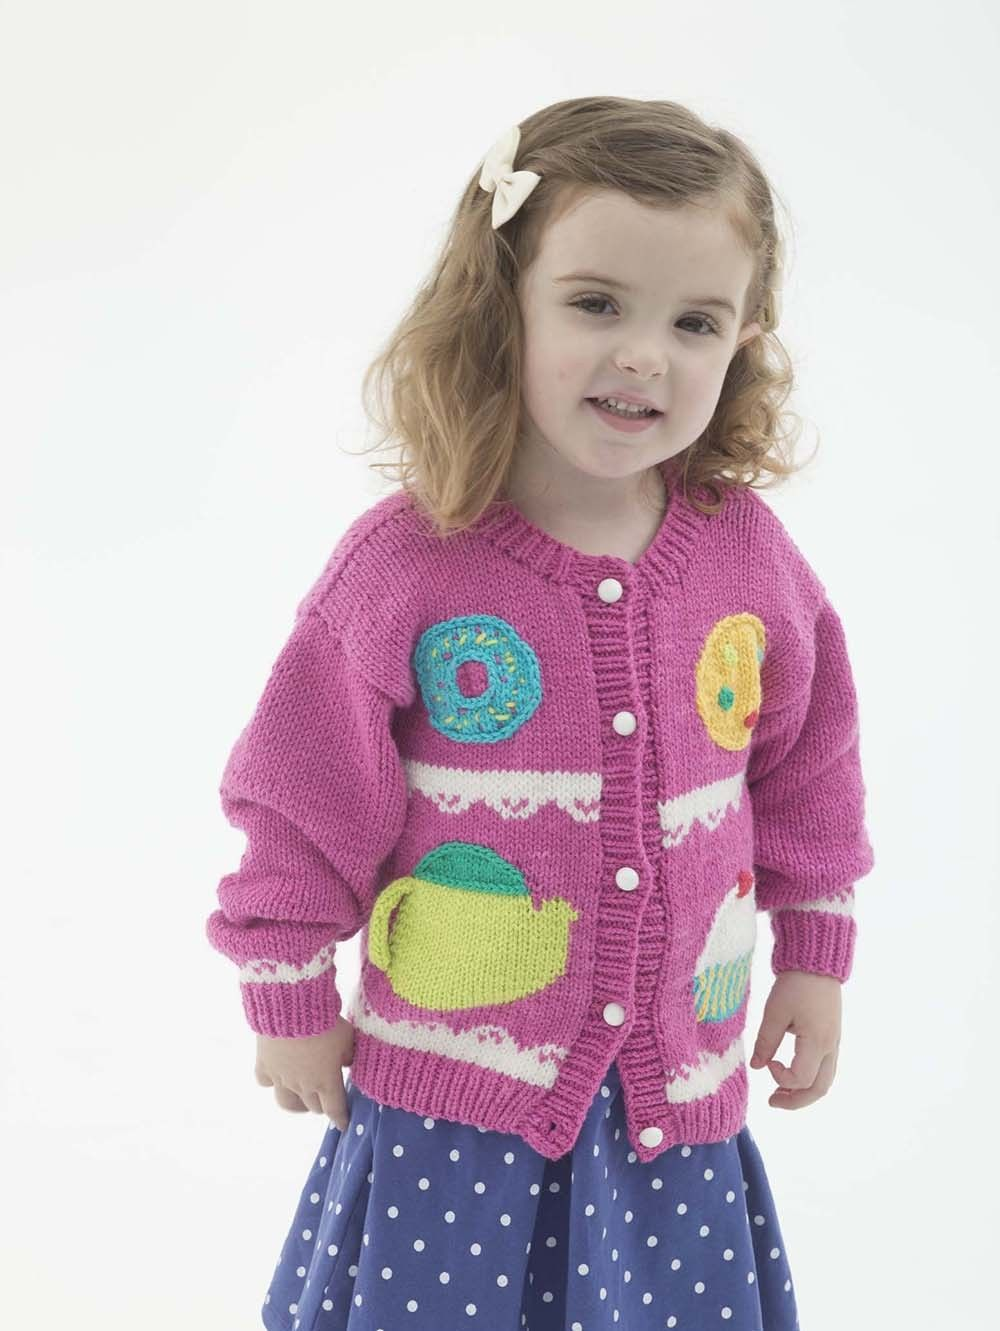 Sweets cardigan pattern knit children knits pinterest free knitting pattern for sweets cardigan for children to fit chest with motifs fit for a tea party with cookie teapot donut cupcake bankloansurffo Gallery